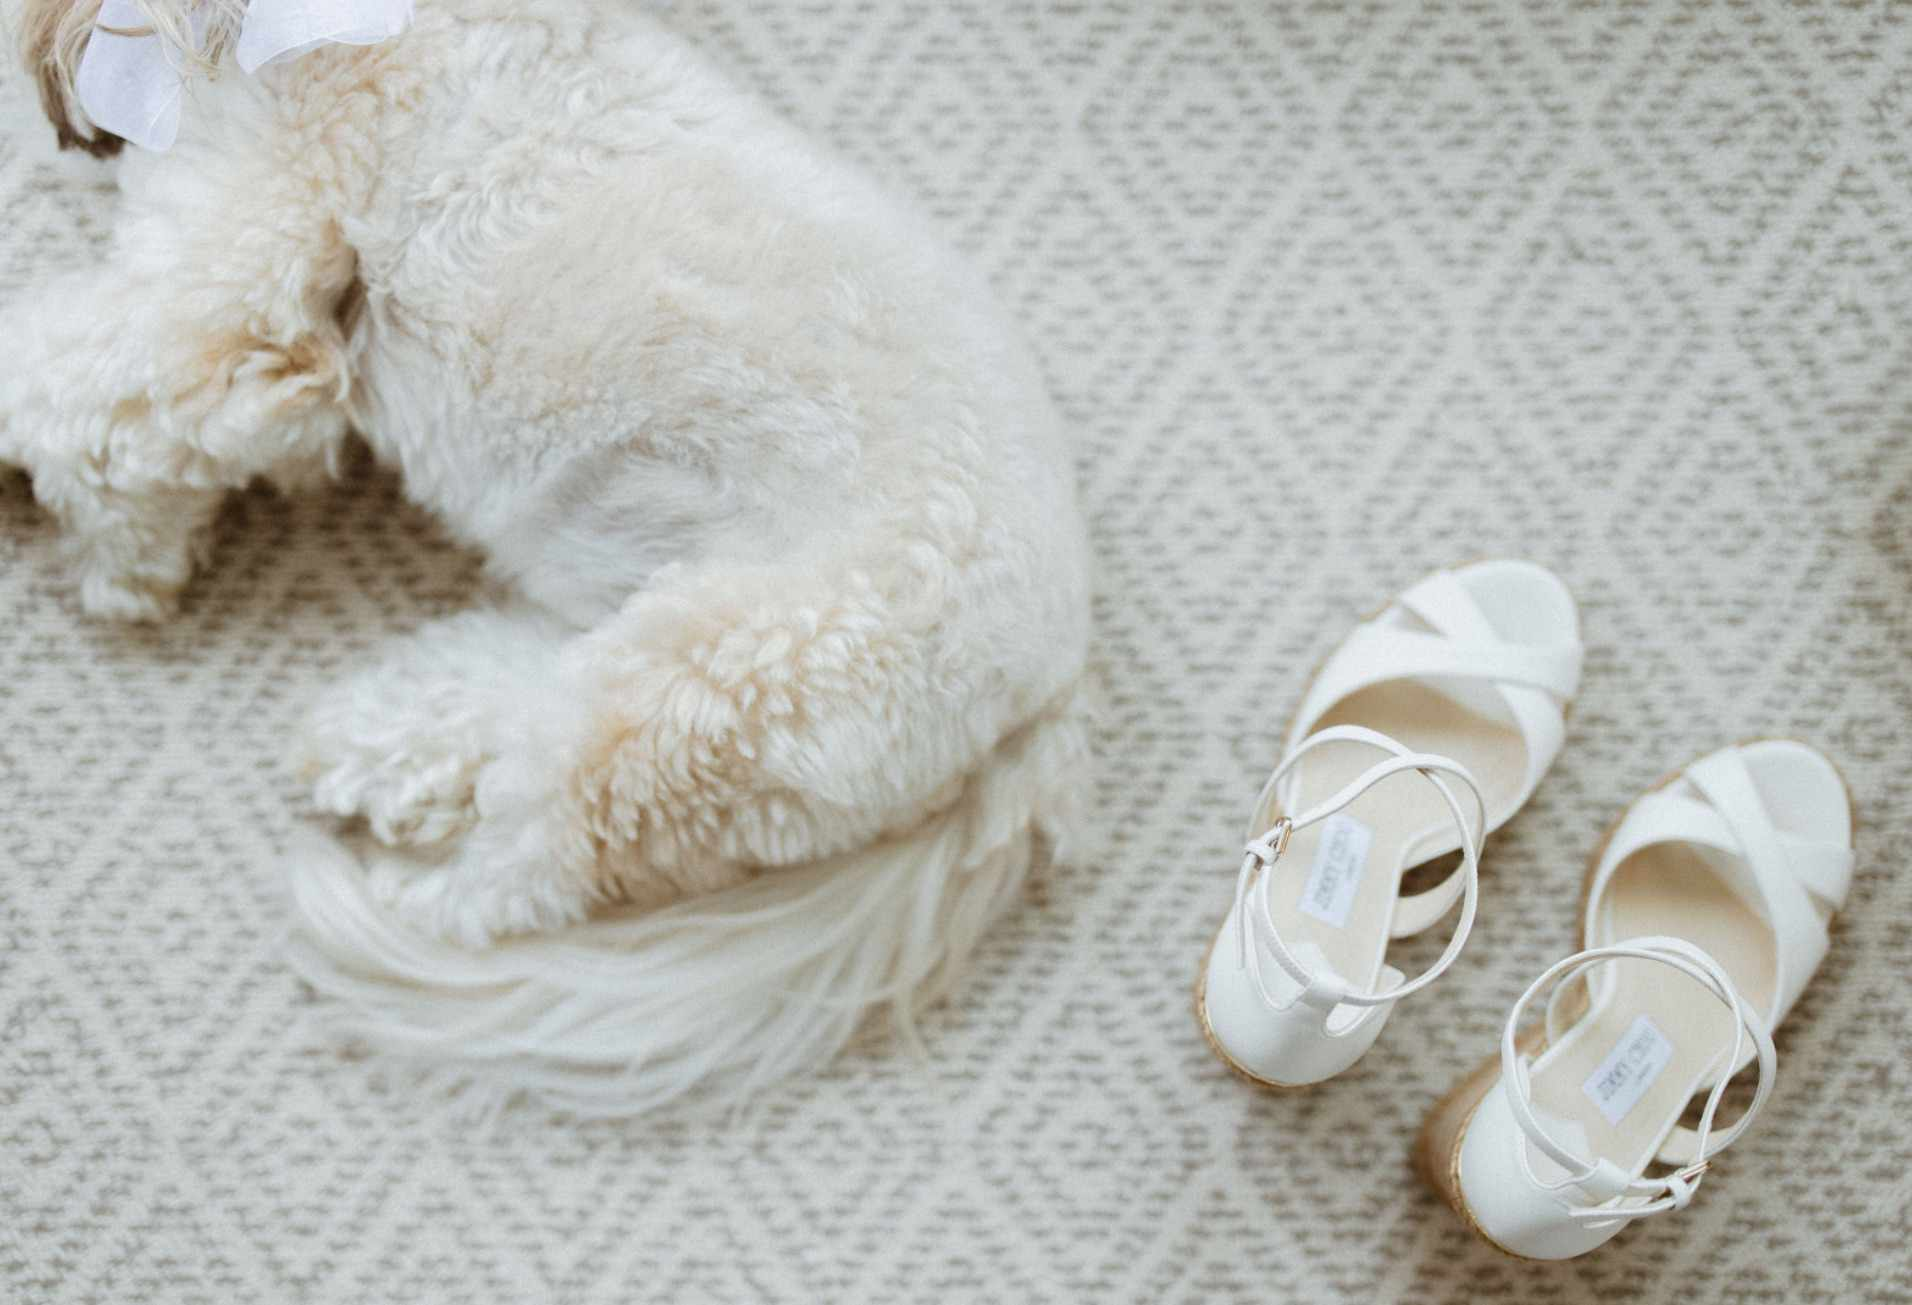 Dog laying next to bride's shoes